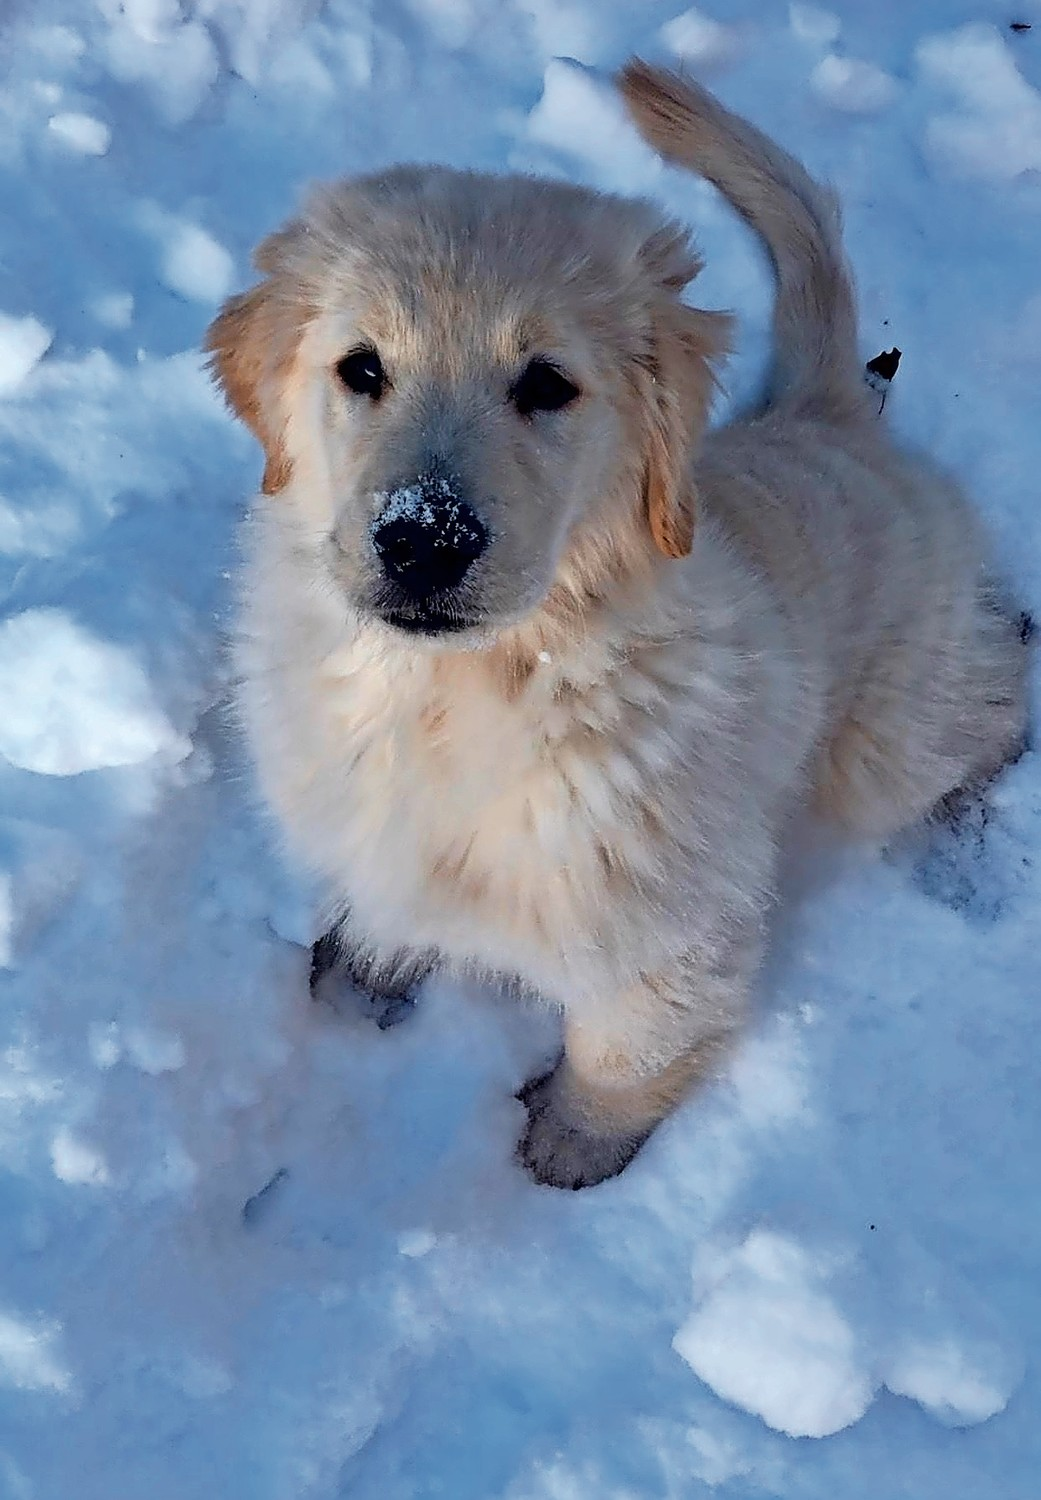 Oakley, a 3-month golden retriever puppy, was happy to sniff around in the snow in Wantagh.